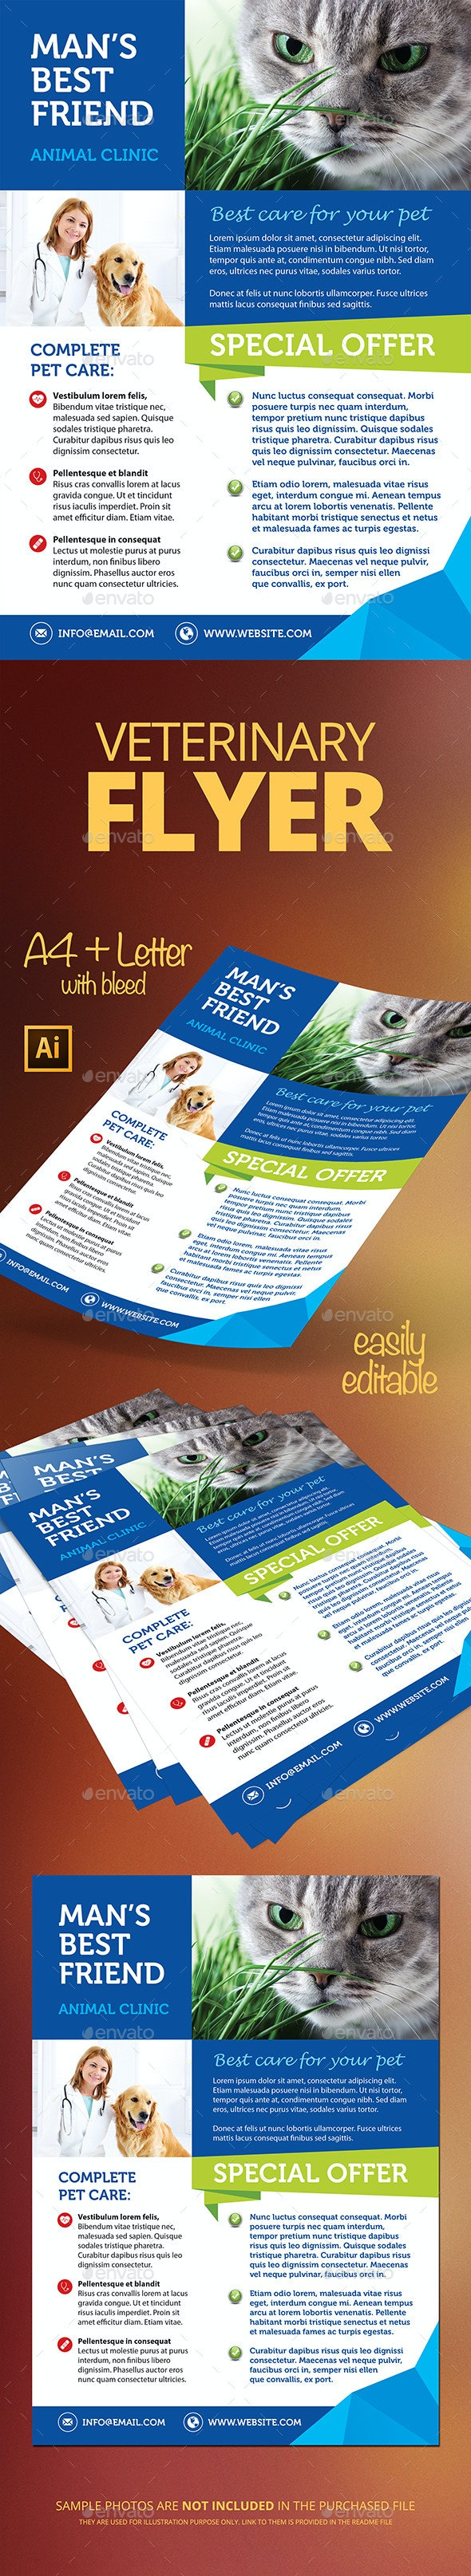 Veterinary Flyer - Flyers Print Templates